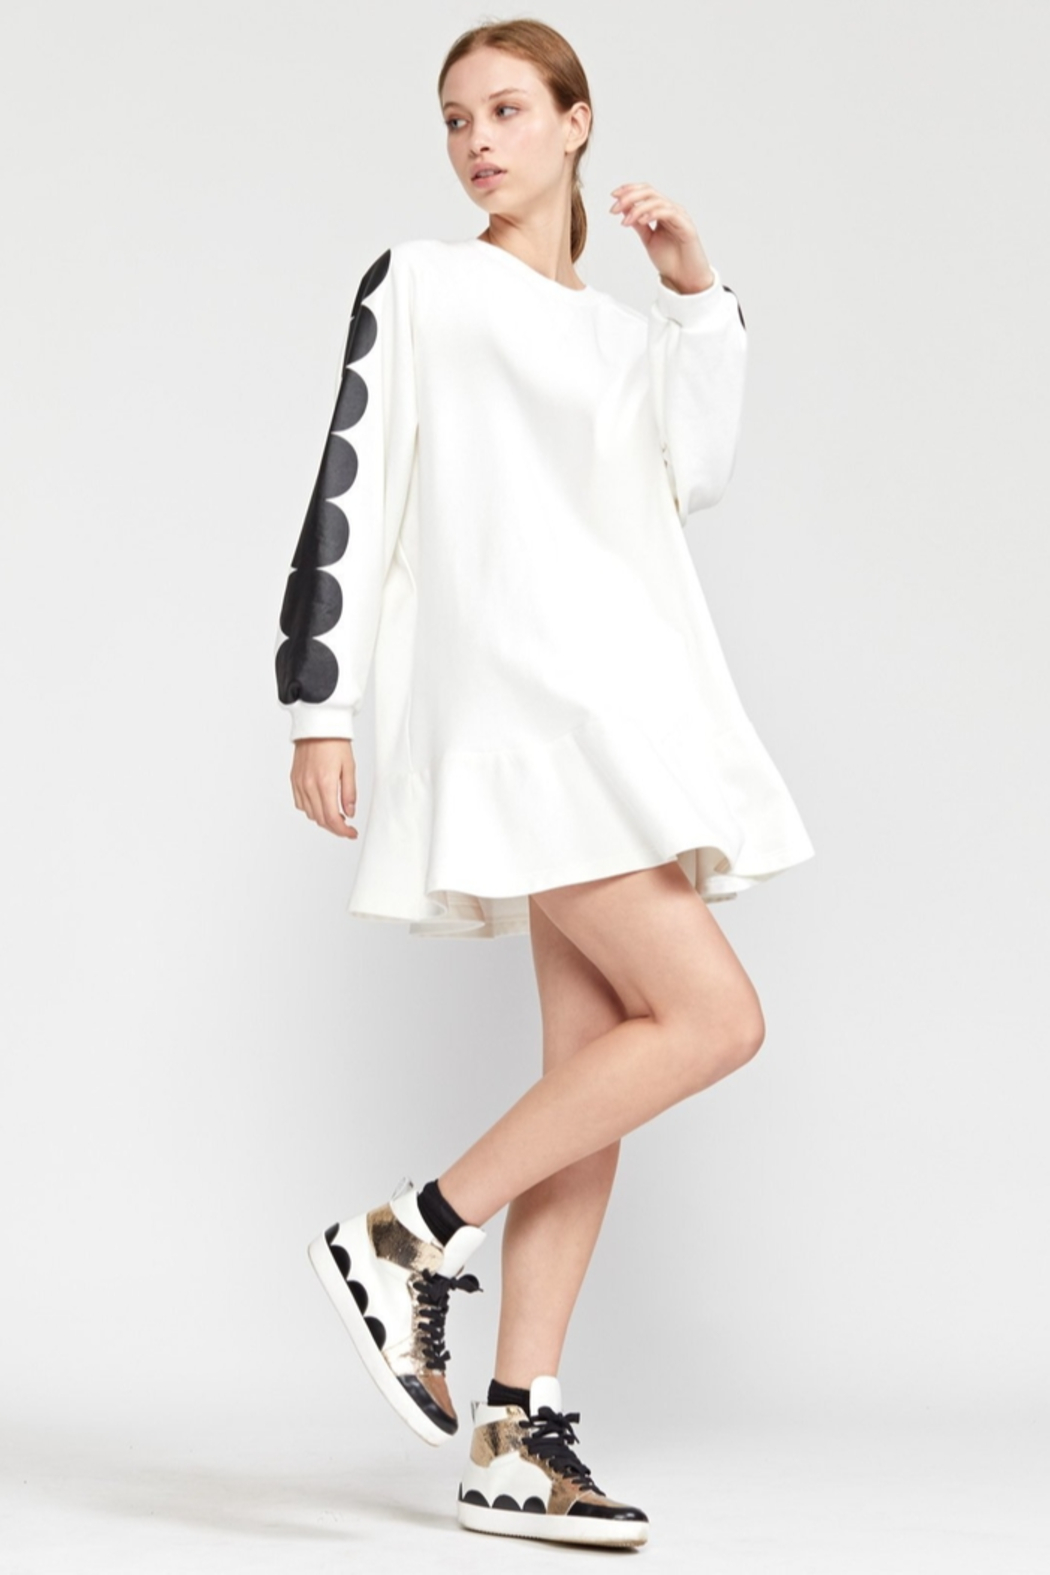 Cynthia Rowley Sofie Printed Scallop Sweatshirt Dress - Back Cropped Image